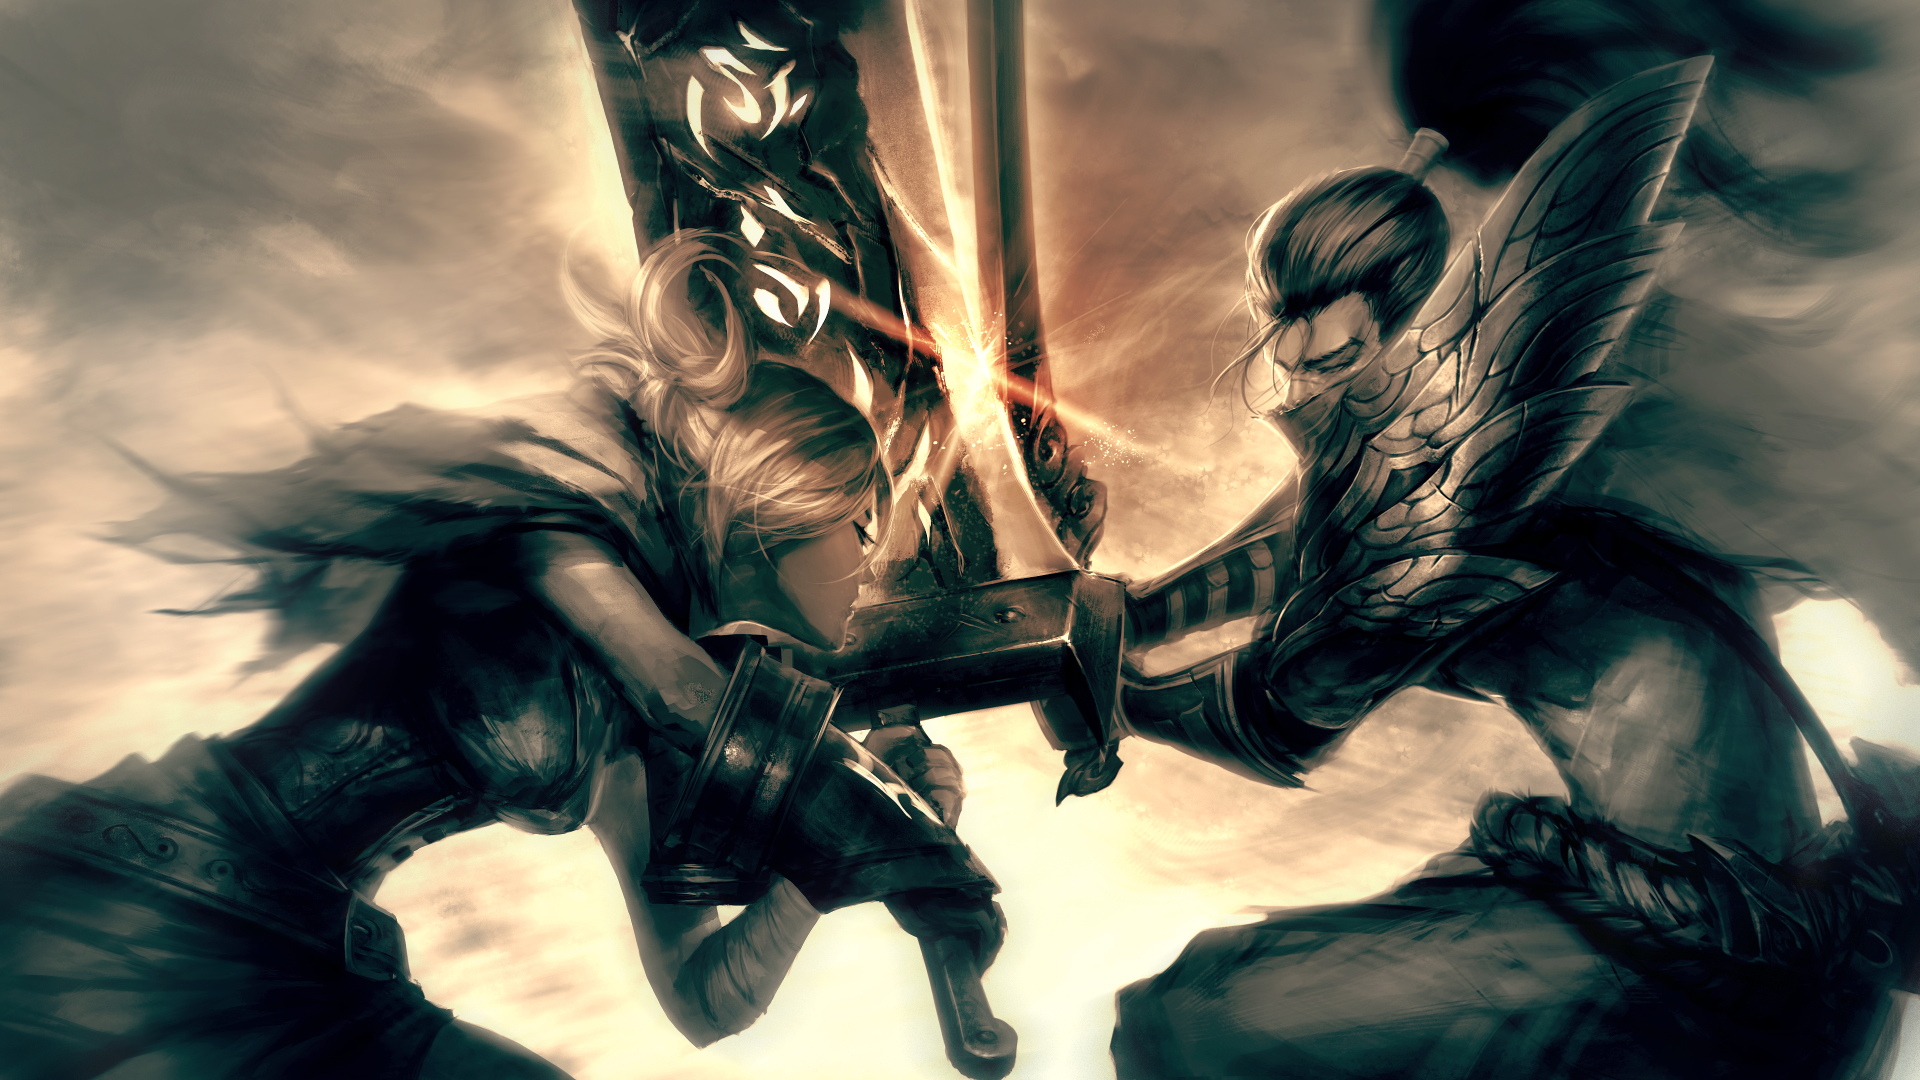 Riven vs Yasuo wallpaper